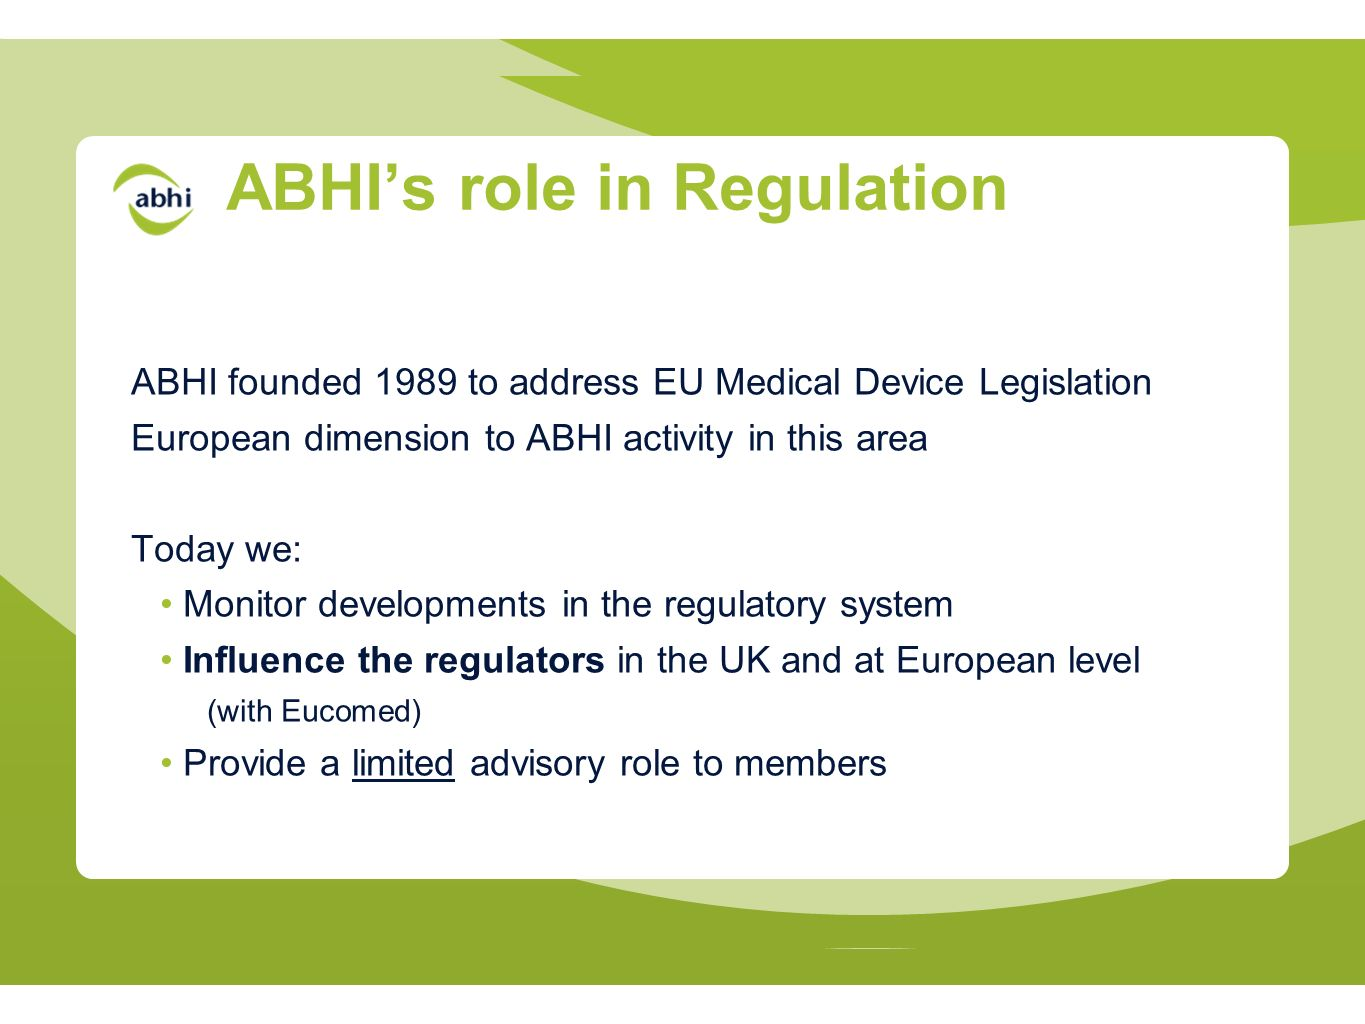 ABHI's role in Regulation